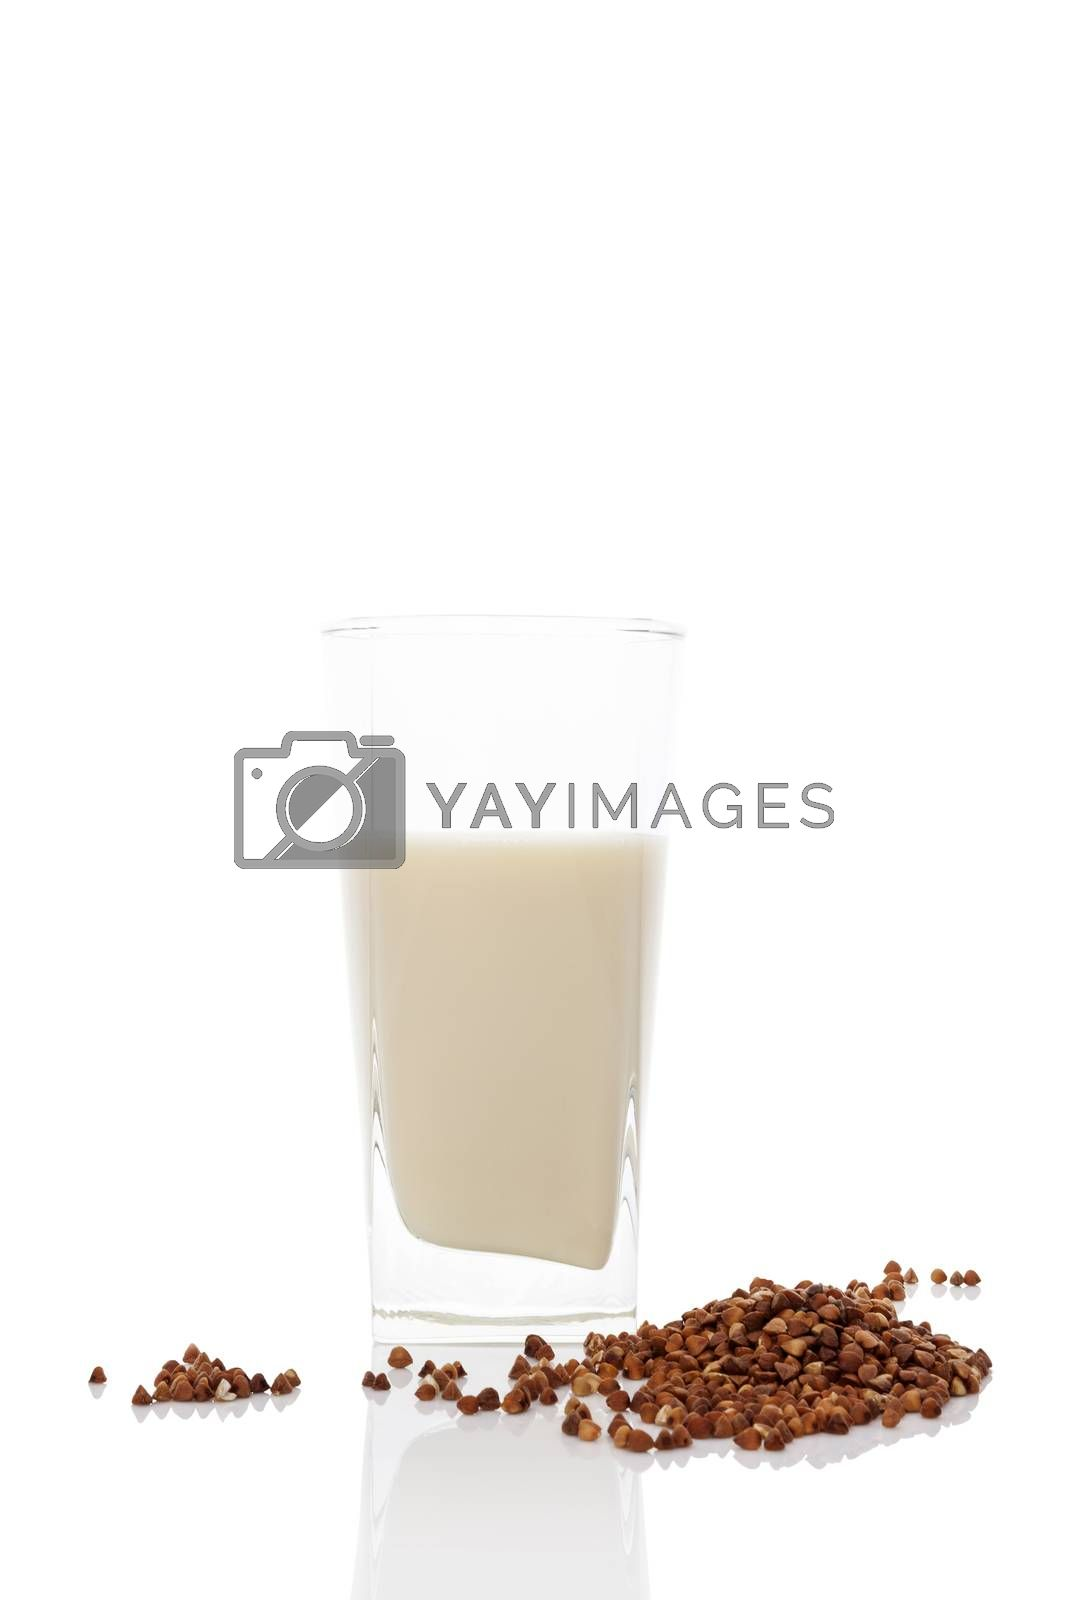 Buckwheat milk in glass with dry buckwheat seeds isolated on white background. Vegan and vegetarian milk concept.